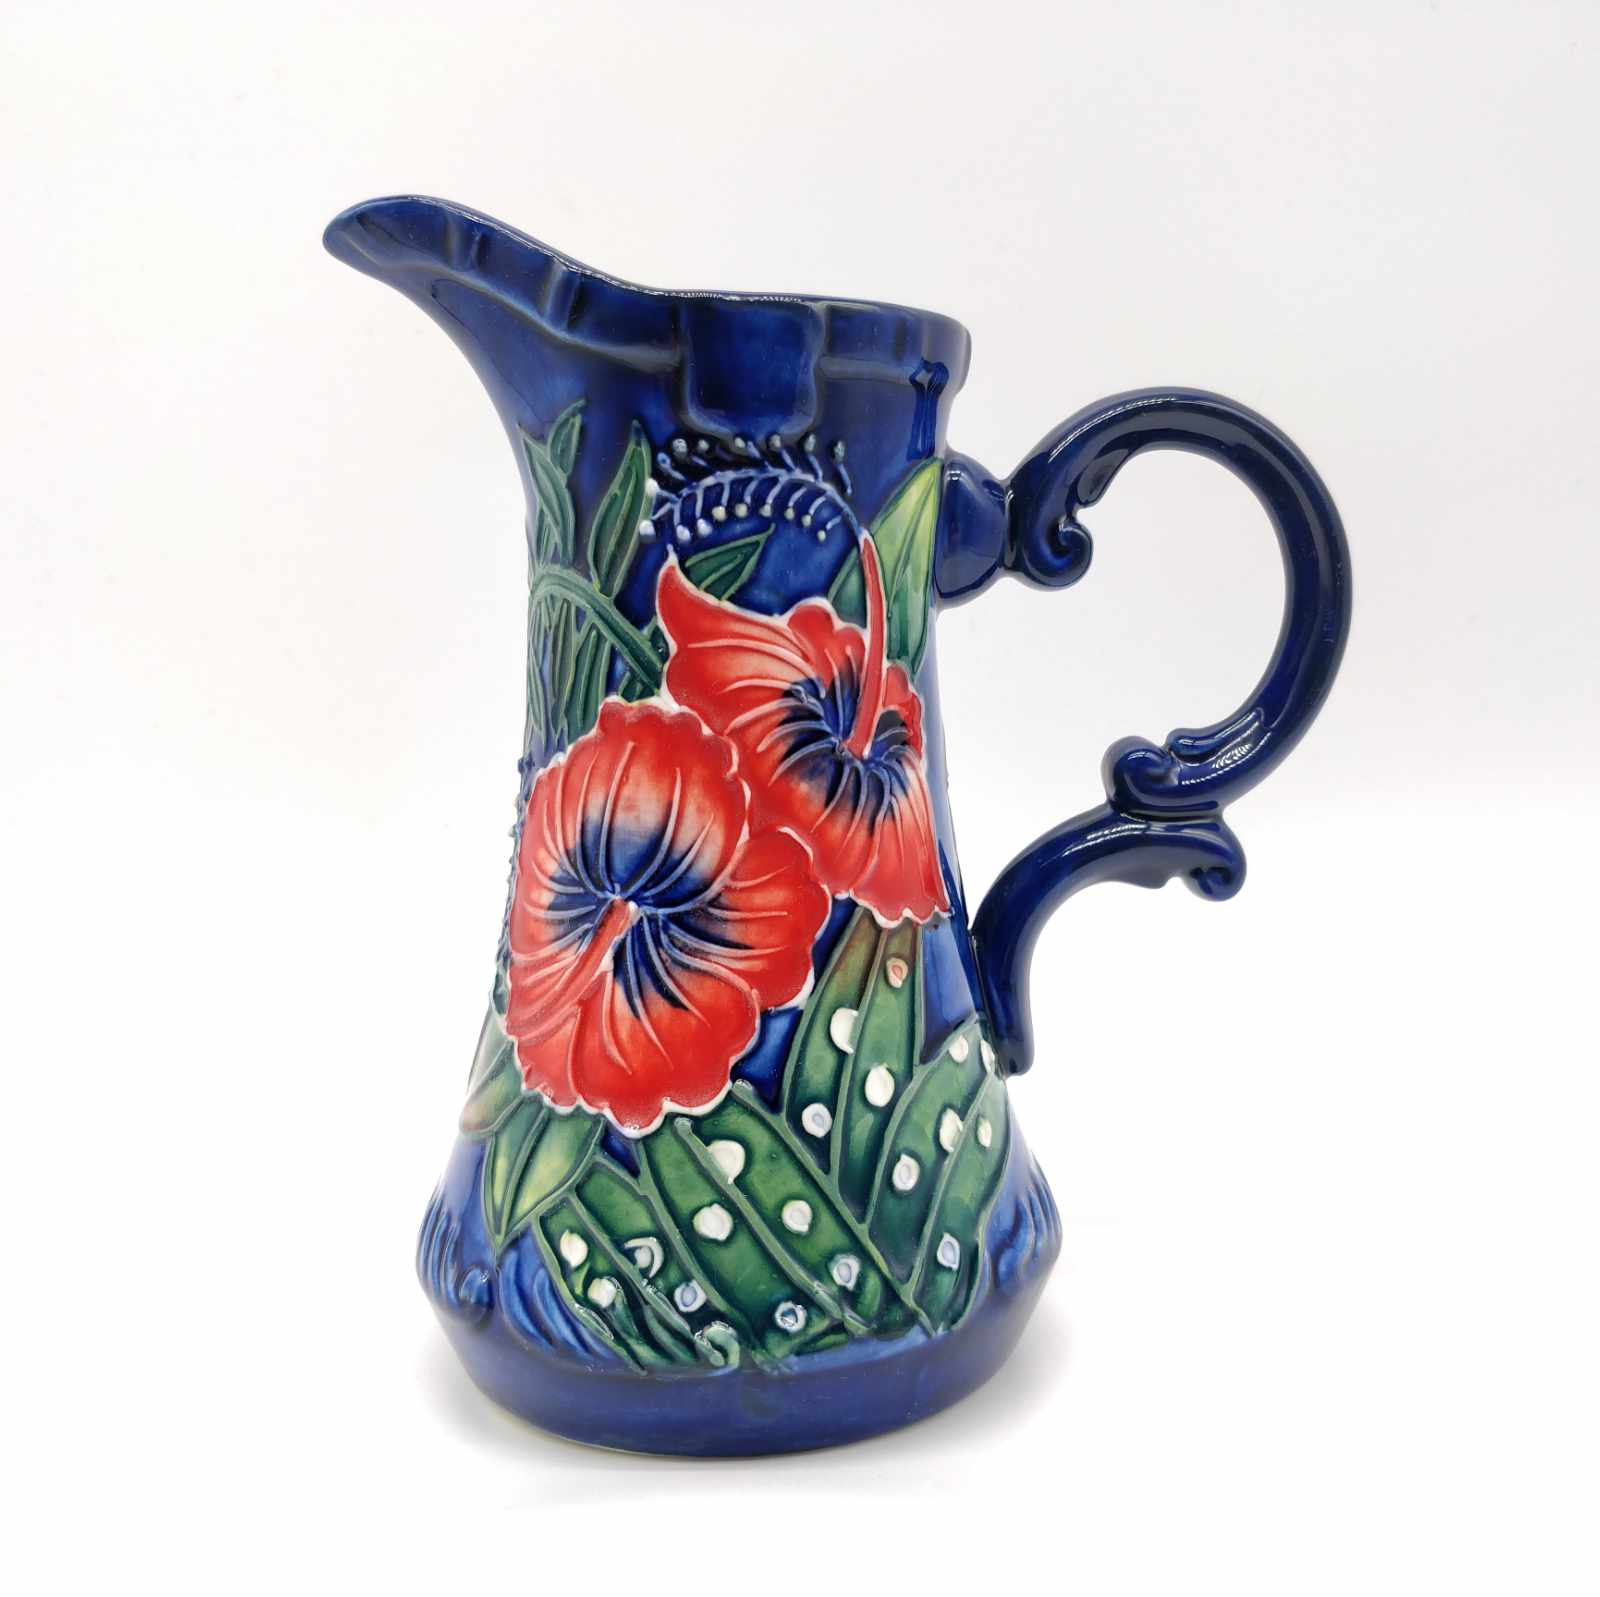 Blue Ceramic Milk Jug with Hibiscus flower